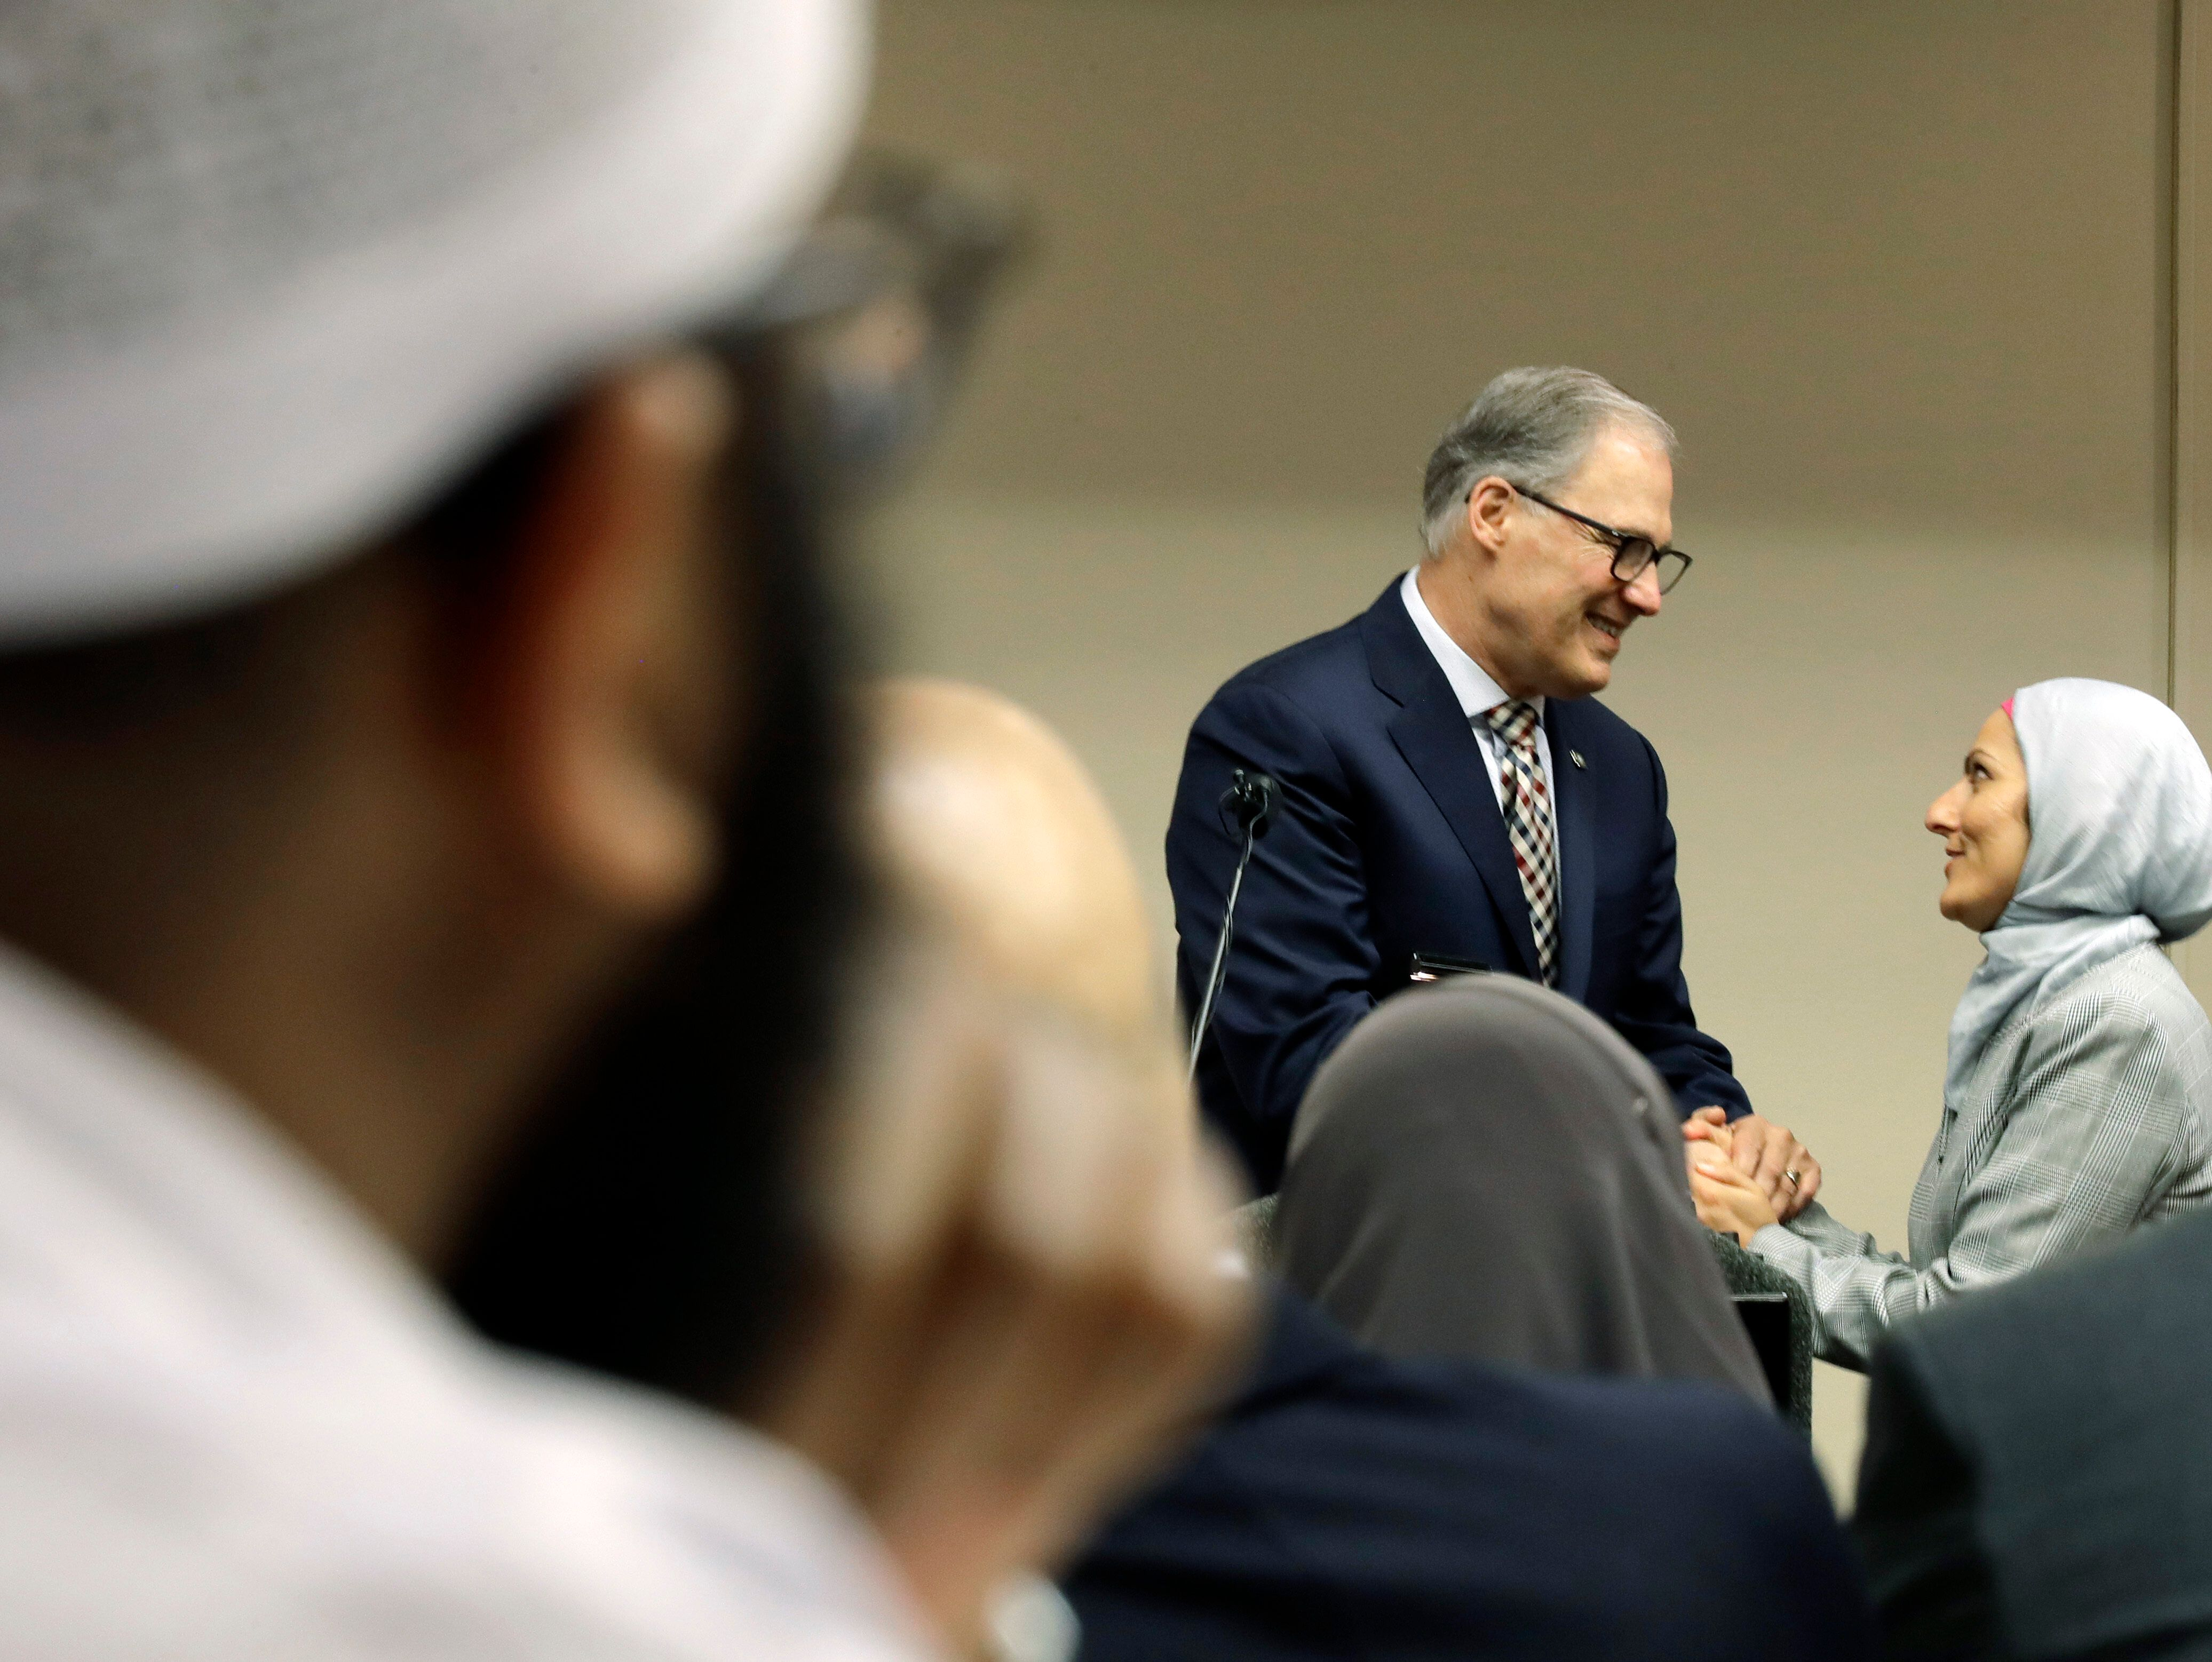 Aneelah Afzali, right, executive director of the American Muslim Empowerment Network at the Muslim Association of Puget Sound, greets Washington Gov. Jay Inslee, center, during a session of Washington Muslim Day at the Capitol, which was organized by the Washington state chapter of the Council on American-Islamic Relations, Thursday, March 21, 2019, in Olympia, Wash. Attendees spent the day meeting with legislators, and heard speeches from Inslee and Lt. Gov. Cyrus Habib. (AP Photo/Ted S. Warren)